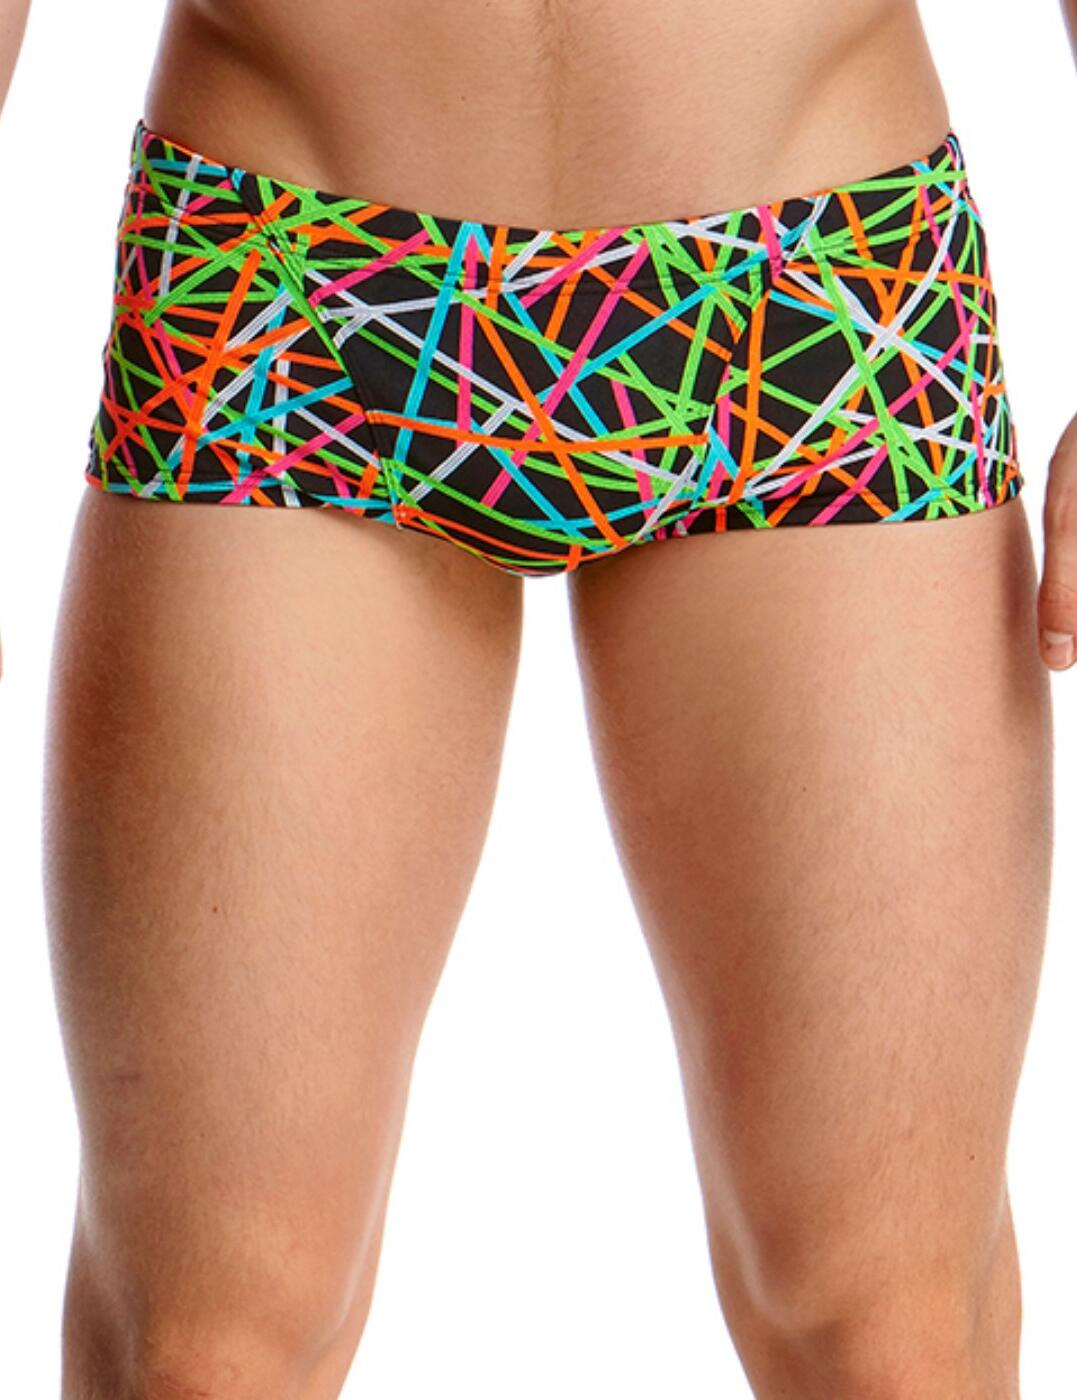 FT30M02005 Funky Trunks Mens Classic Strapped In Swim Trunks - FT30M02005 Strapped In